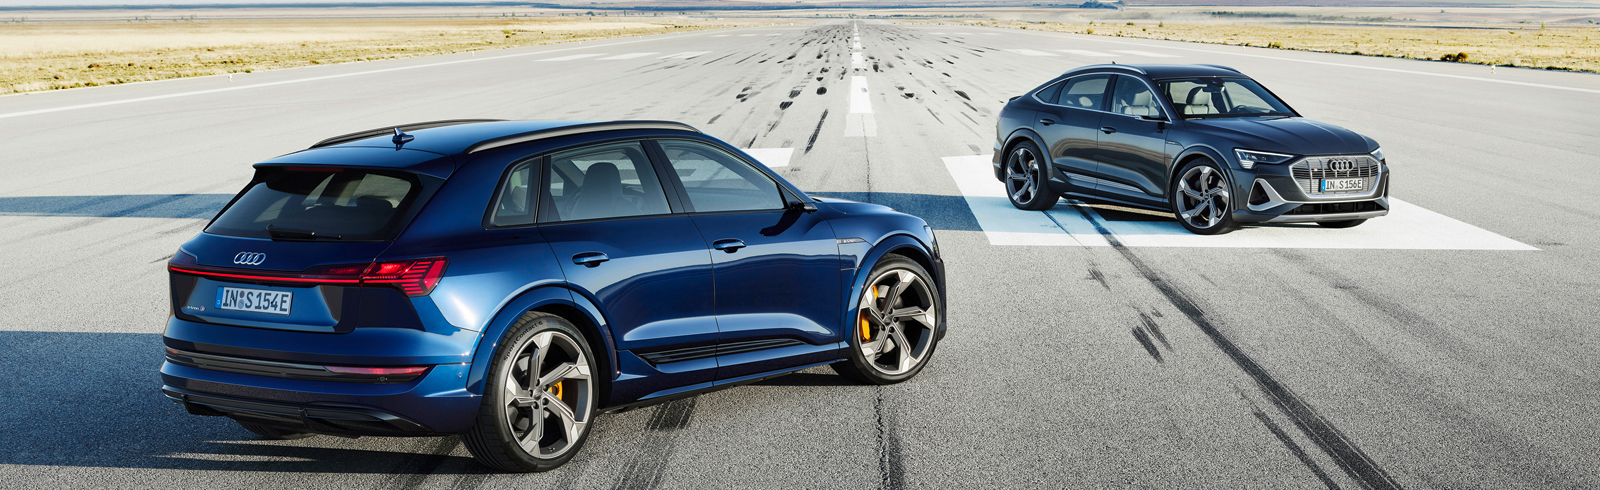 2022 Audi e-tron S and e-tron S Sportback go on sale in the USA this fall